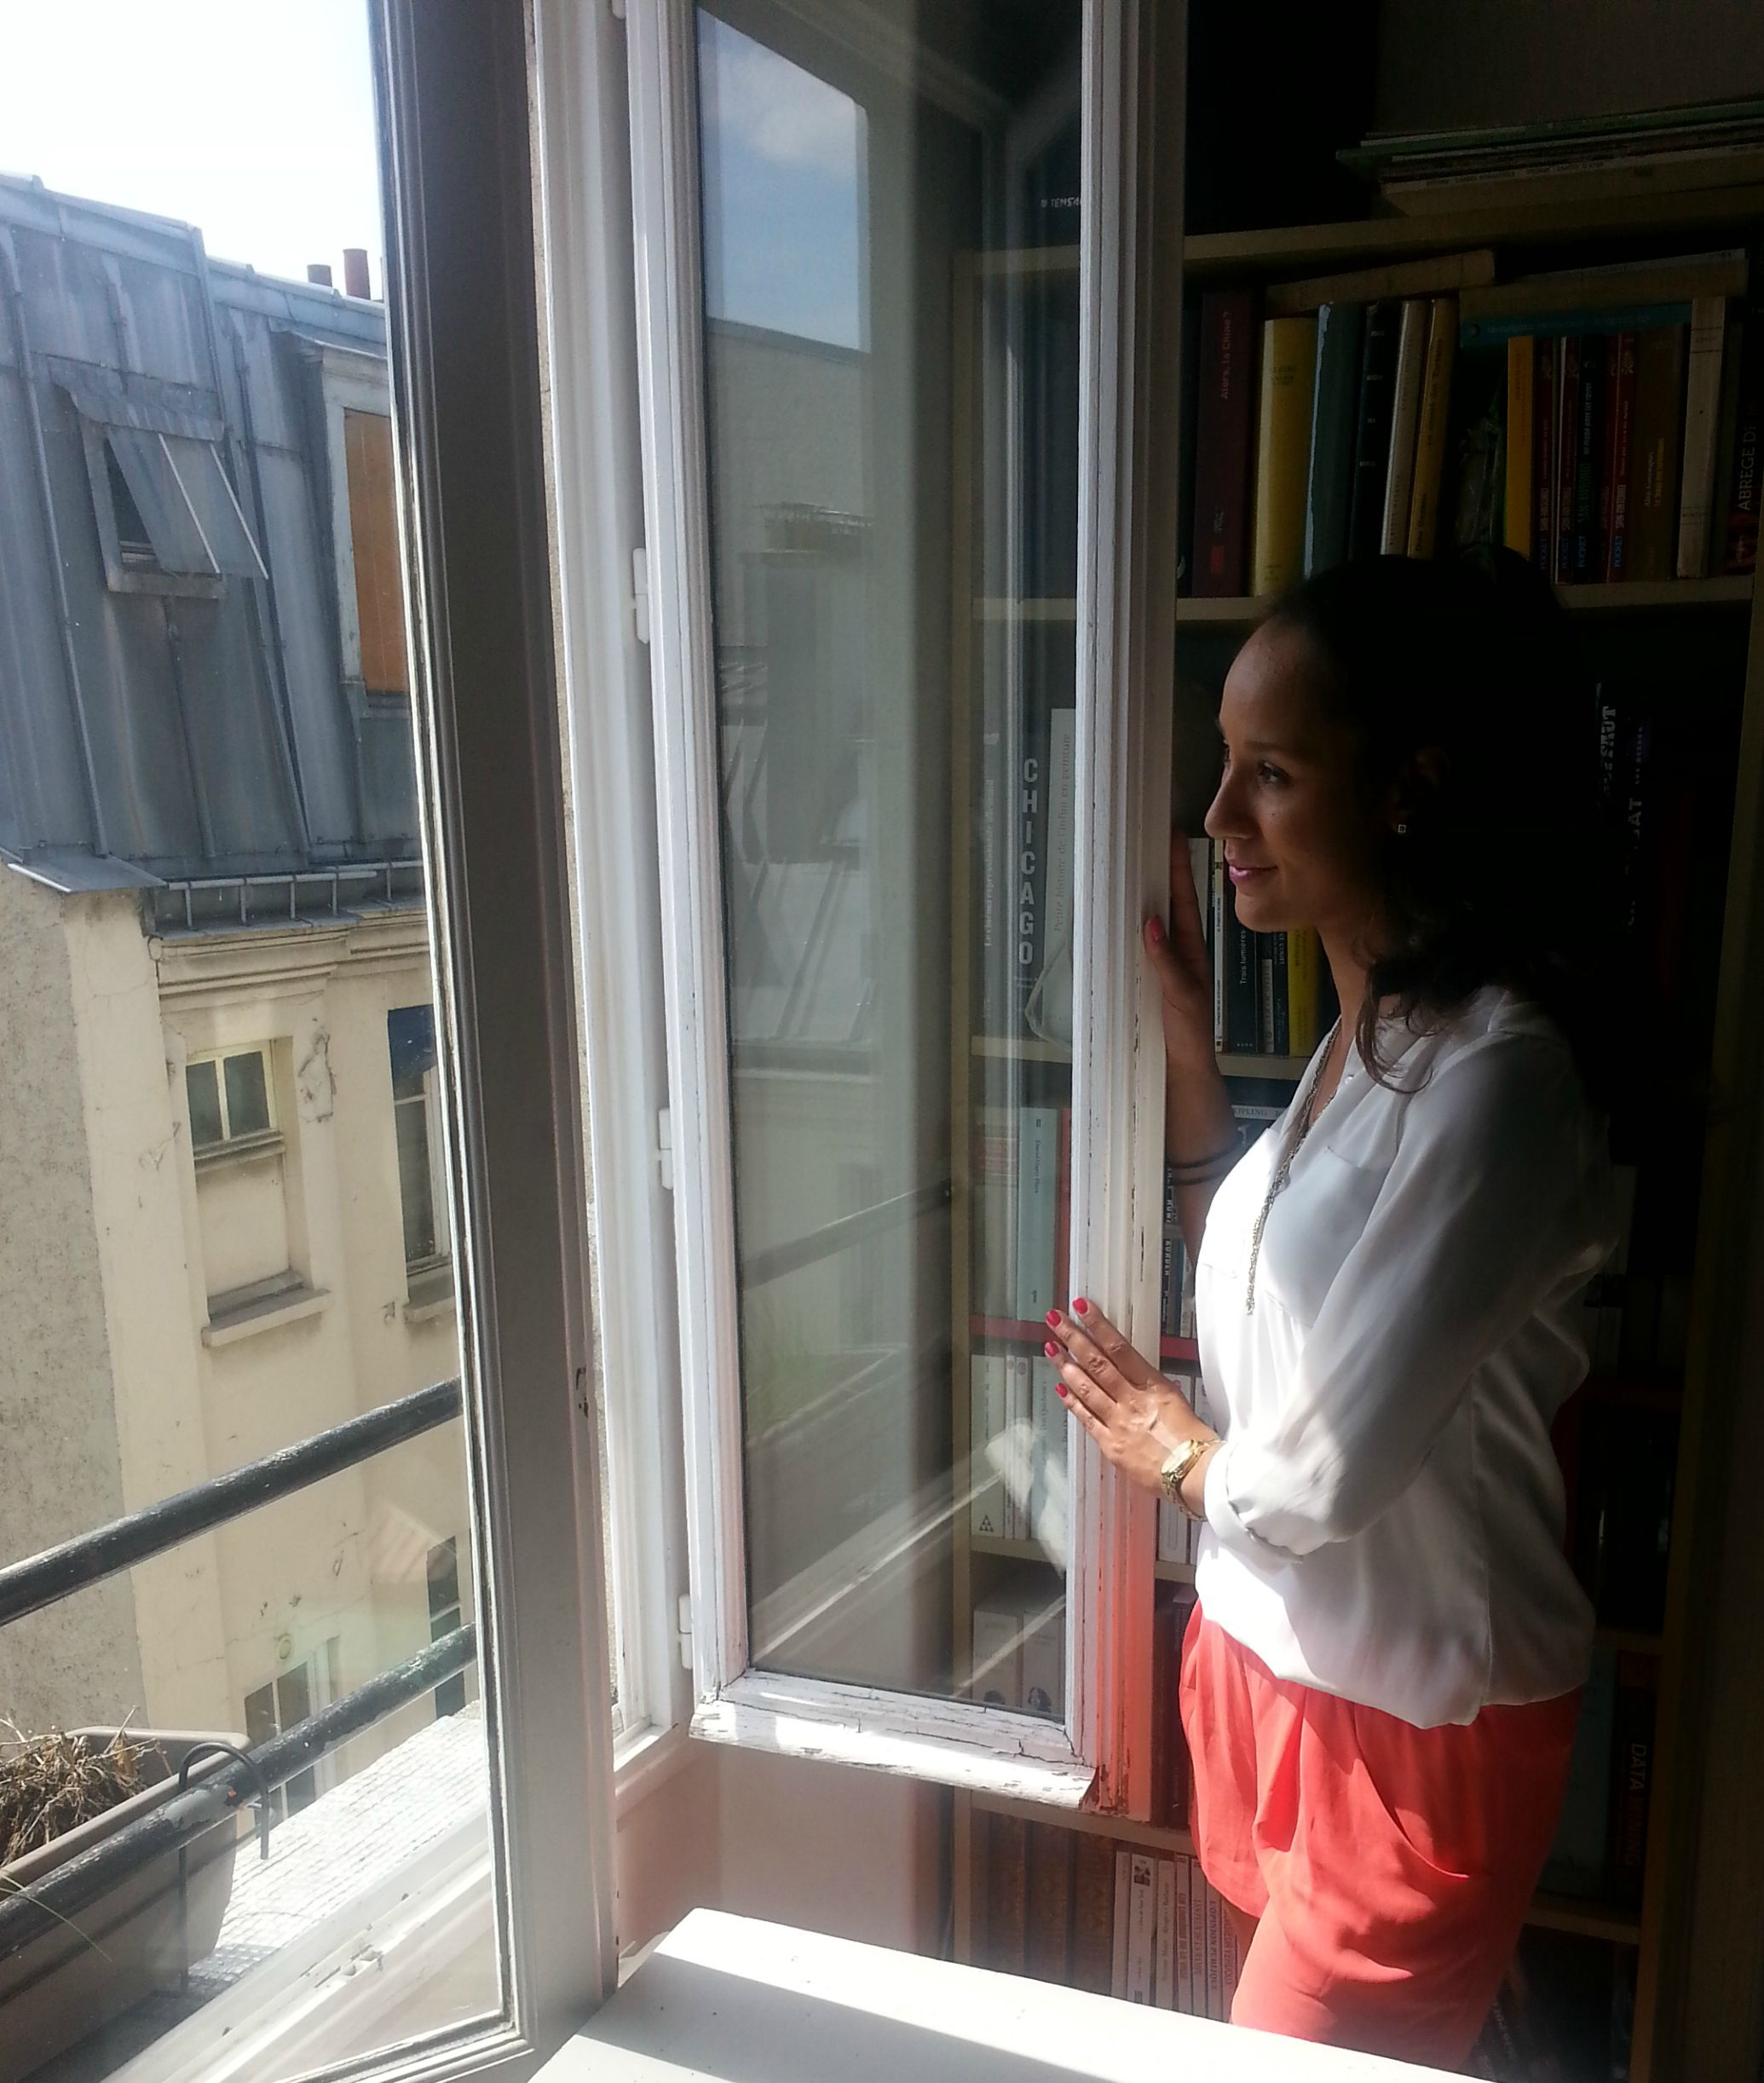 Looking out the apartment window in Paris France